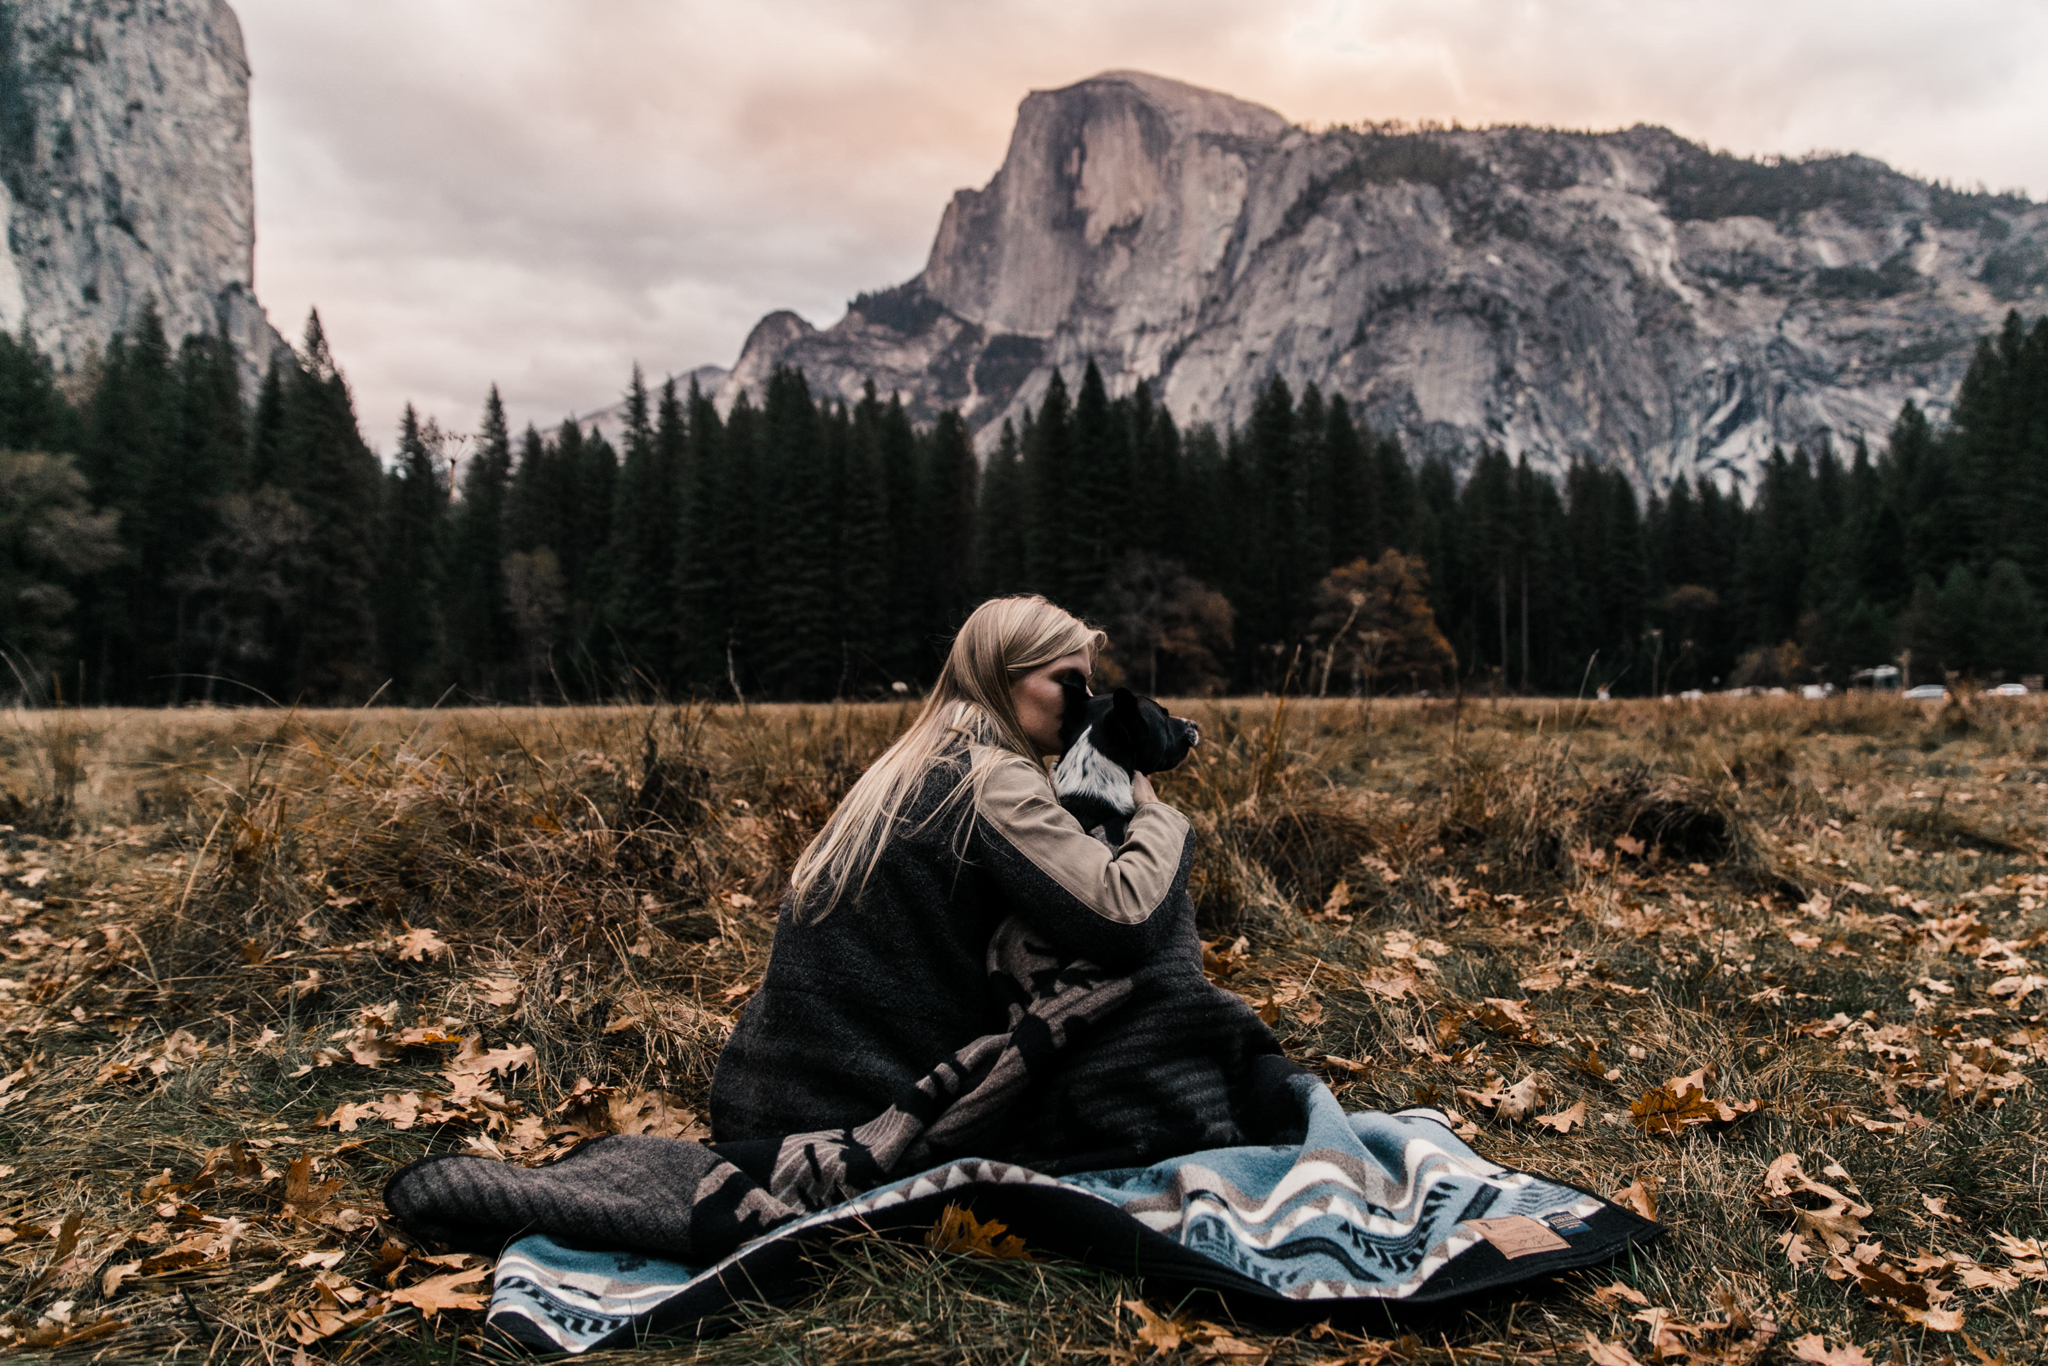 sunset in yosemite national park | utah and california adventure elopement photographers | the hearnes adventure photography | www.thehearnes.com